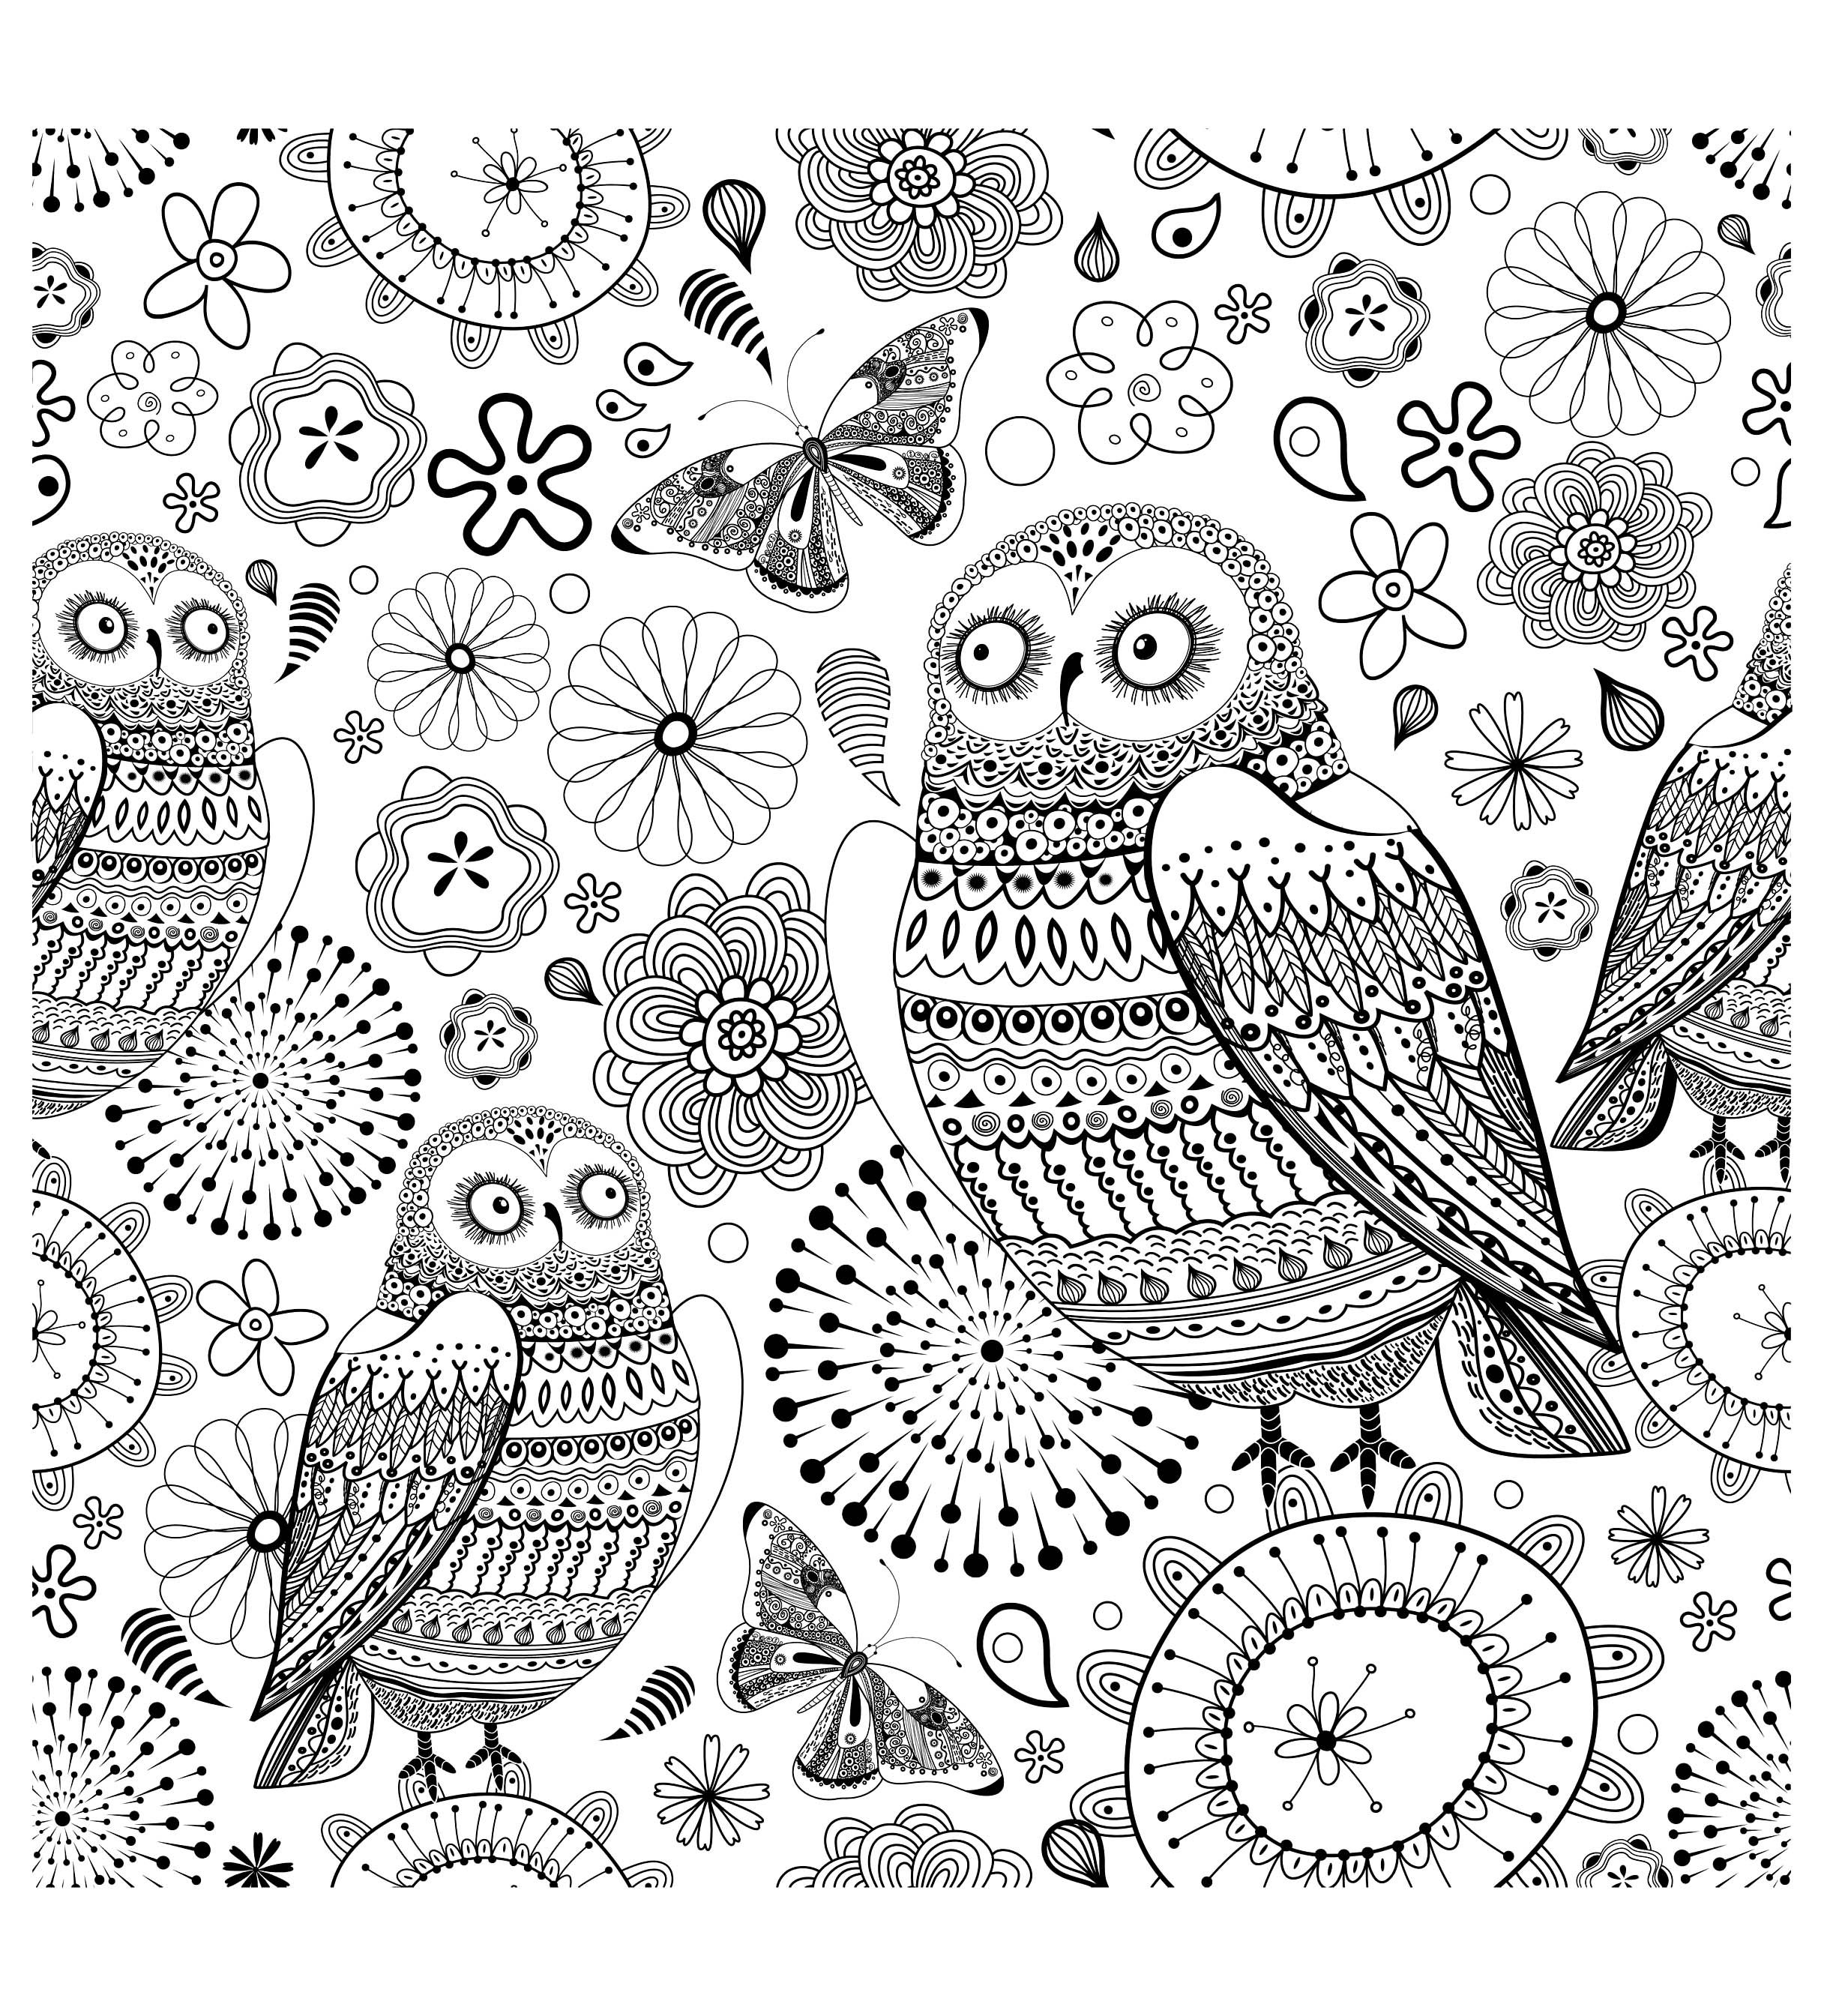 to print this free coloring page coloring difficult owls click